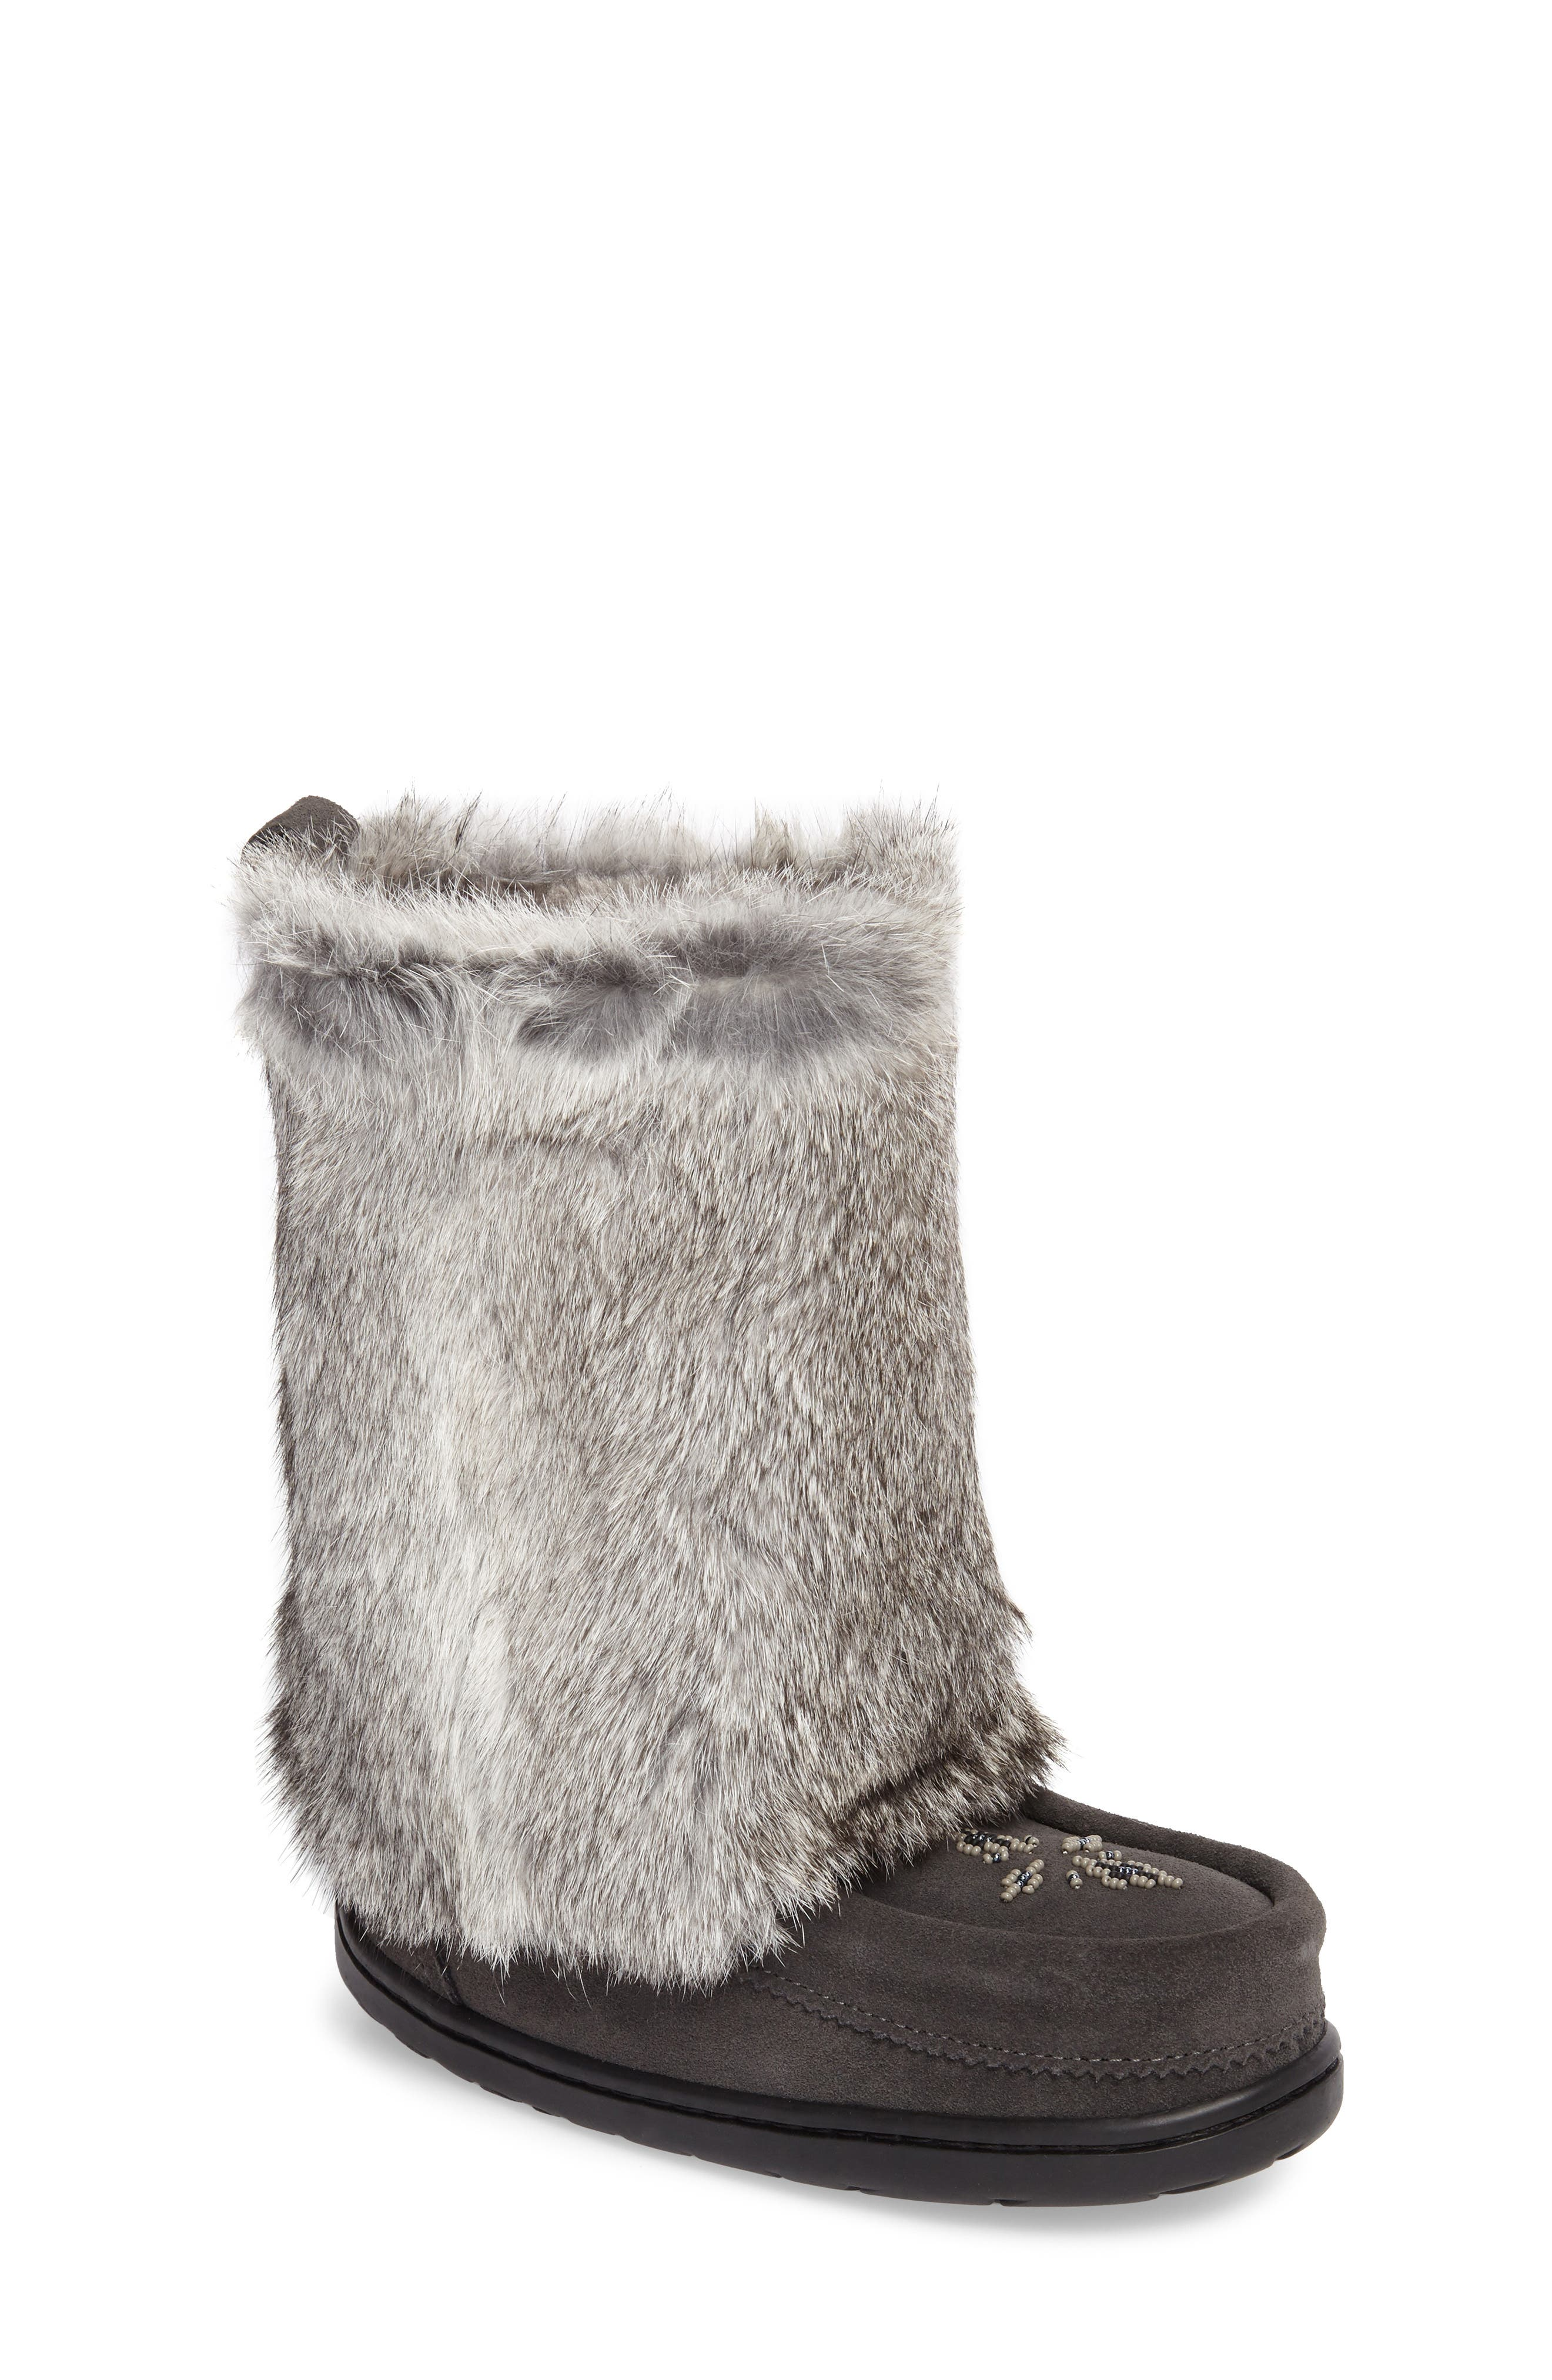 Manitobah Mukluks Nordic Genuine Rabbit Fur & Genuine Shearling Mukluk Boot (Toddler & Little Kid)